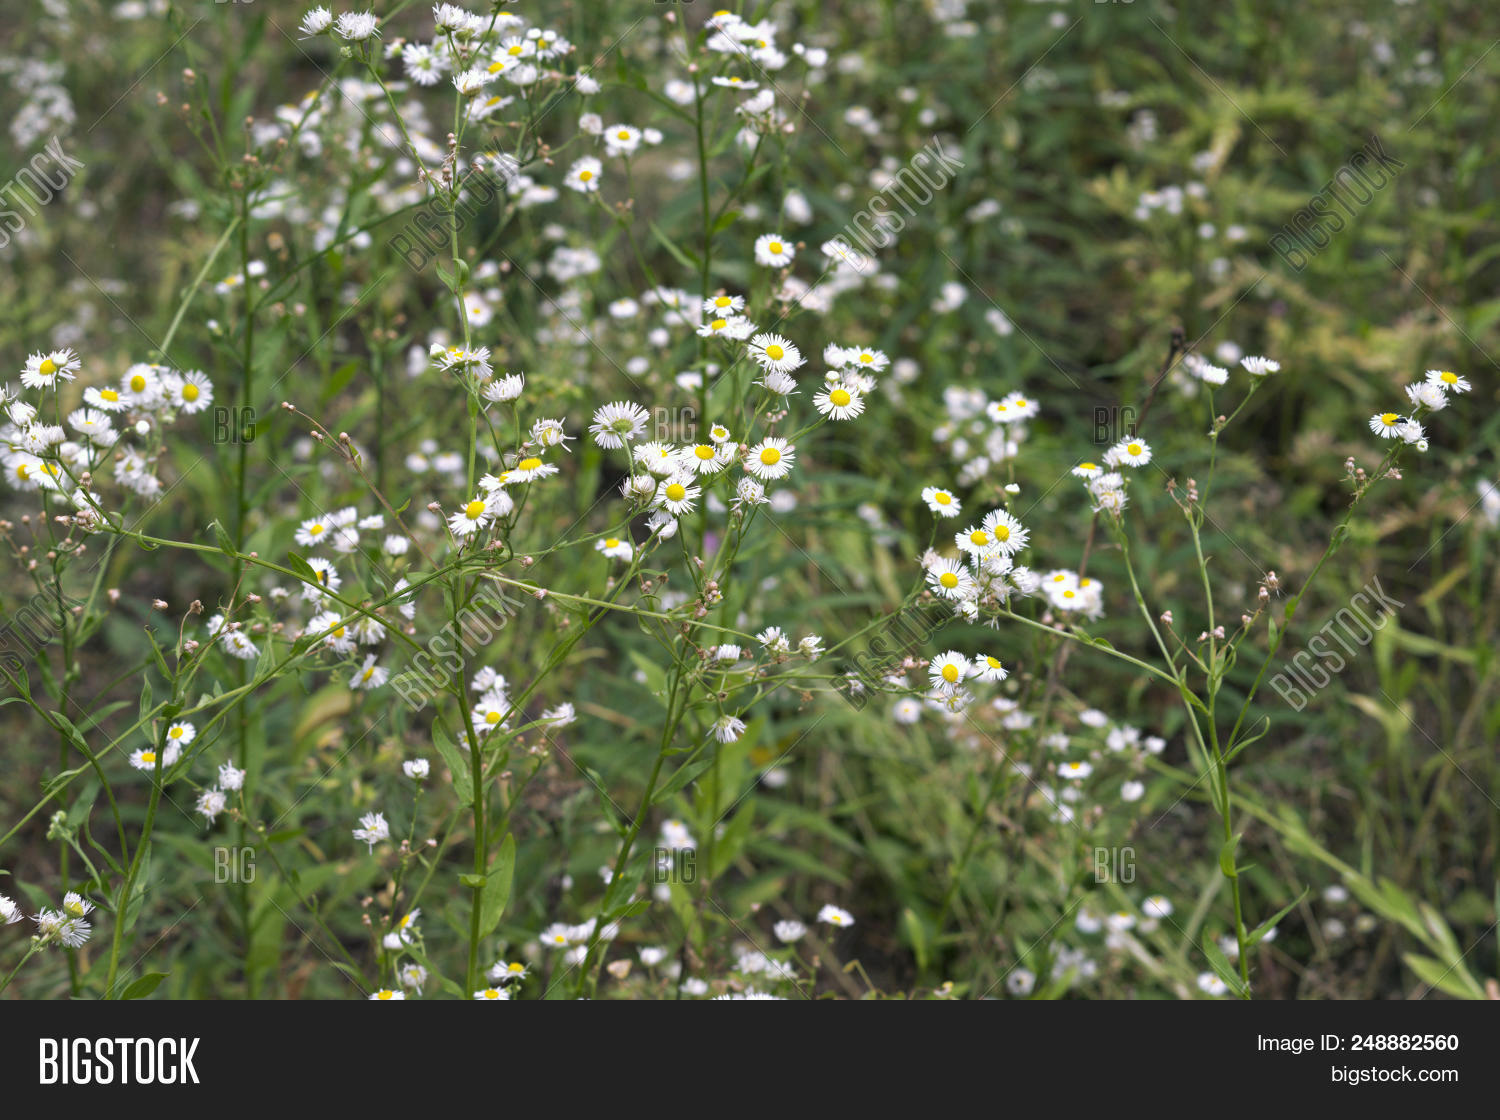 thickets of daisies delicate flowers with a yellow center leucanthemum mightylinksfo